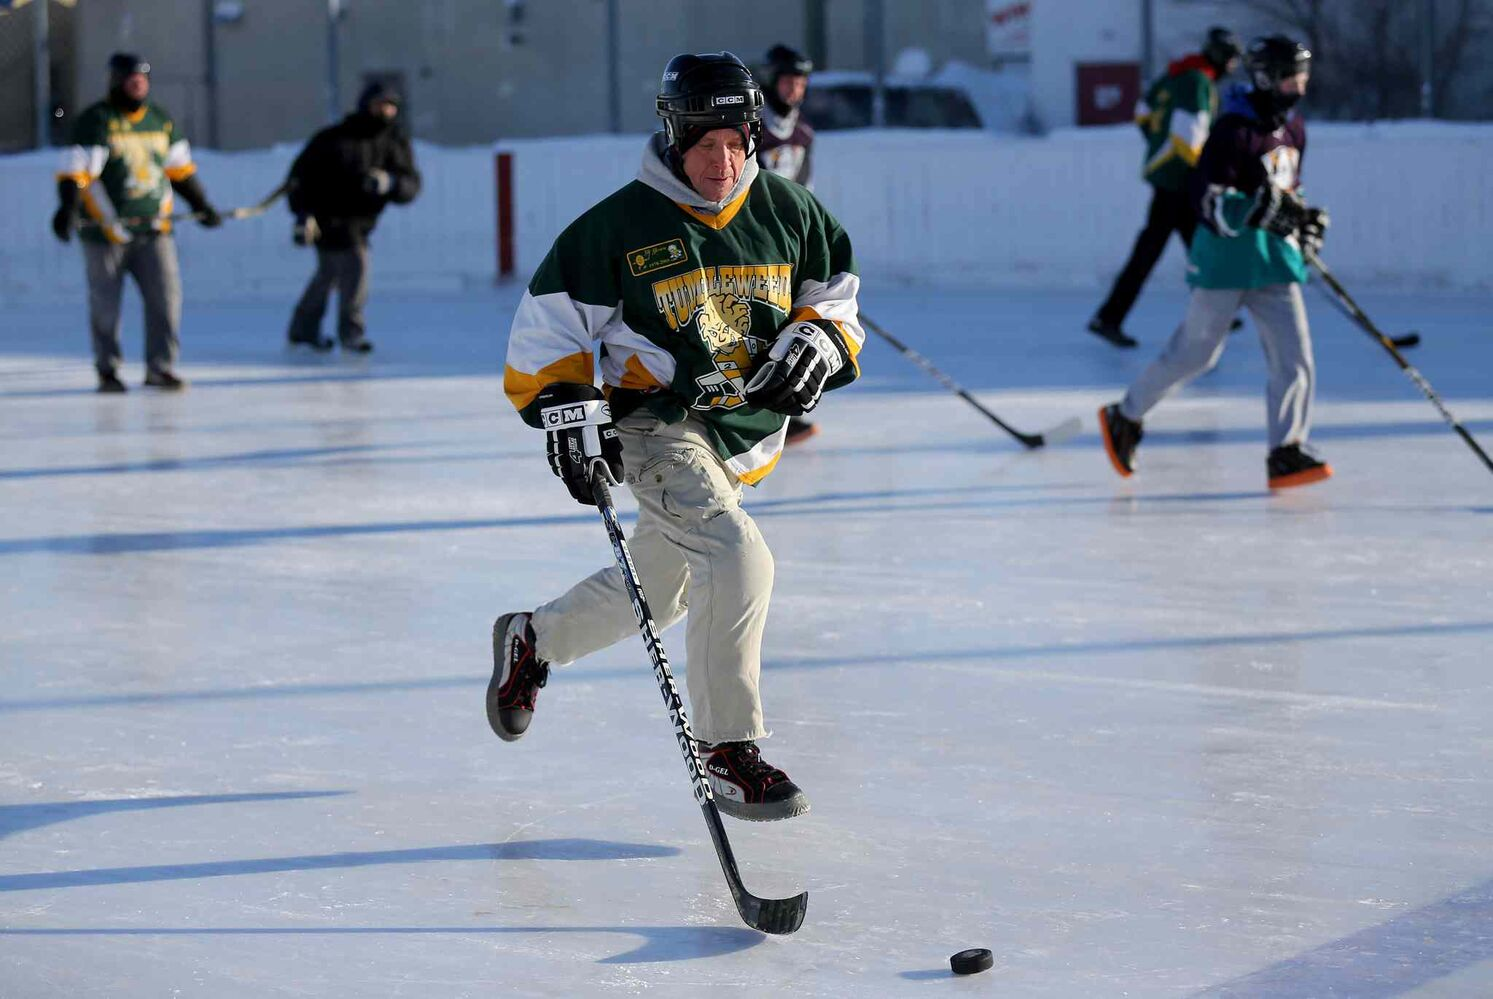 Colin Mackenzie of the Tumbleweeds plays against the Mighty Puckin' Drunks during a spongee game at Melrose Park Community Centre on Jan. 4, 2014.